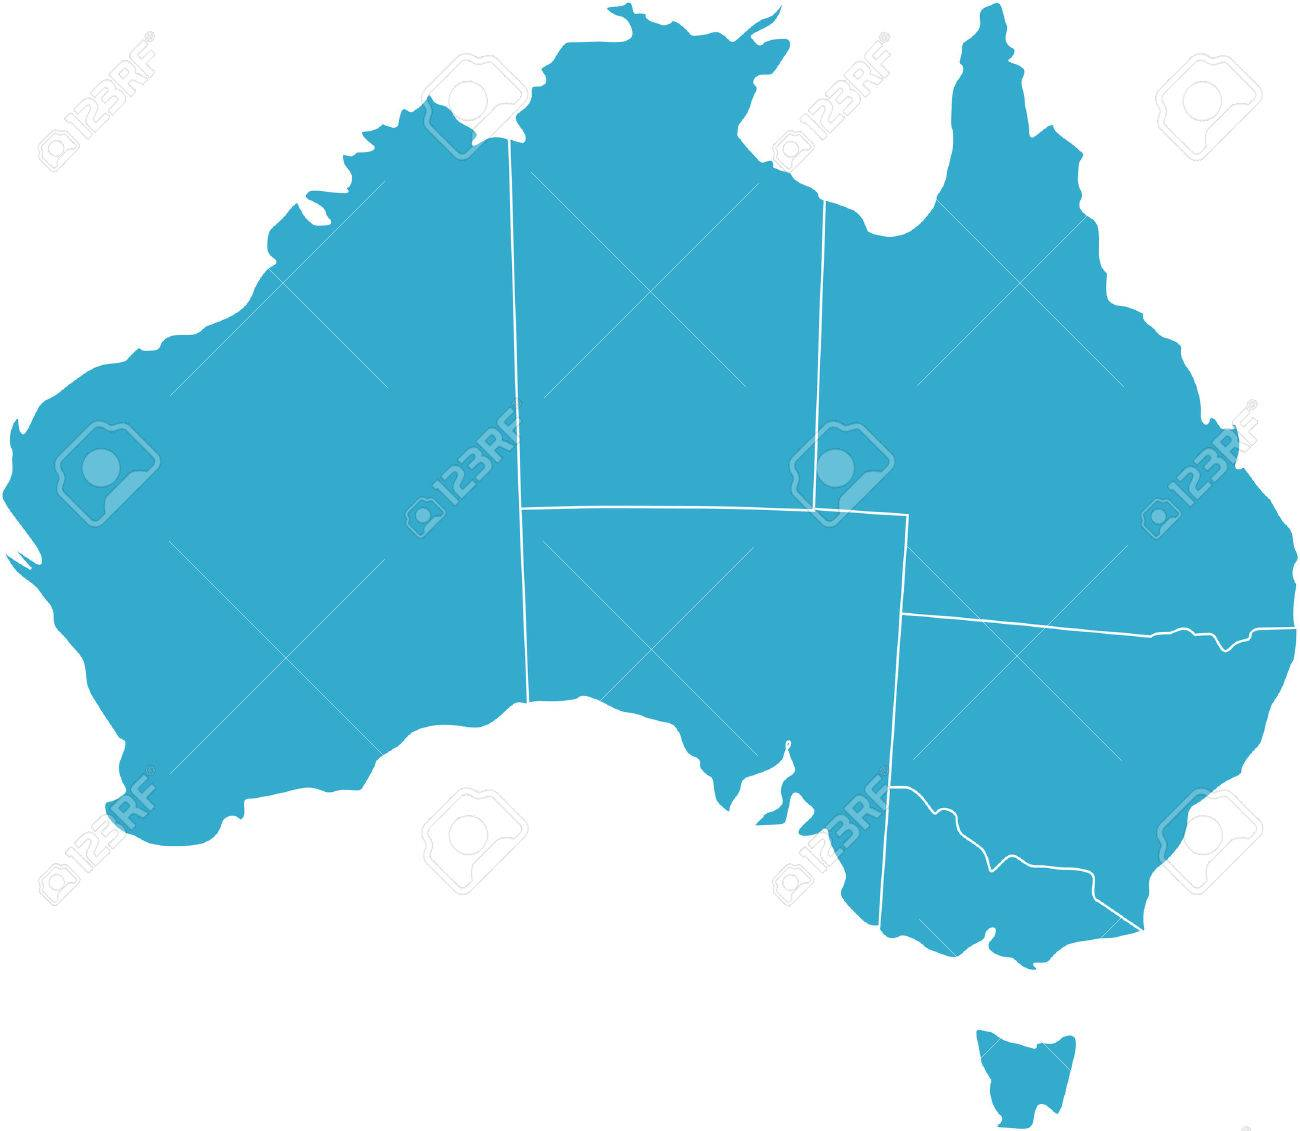 Australia Country Map.There Is A Map Of Australia Country